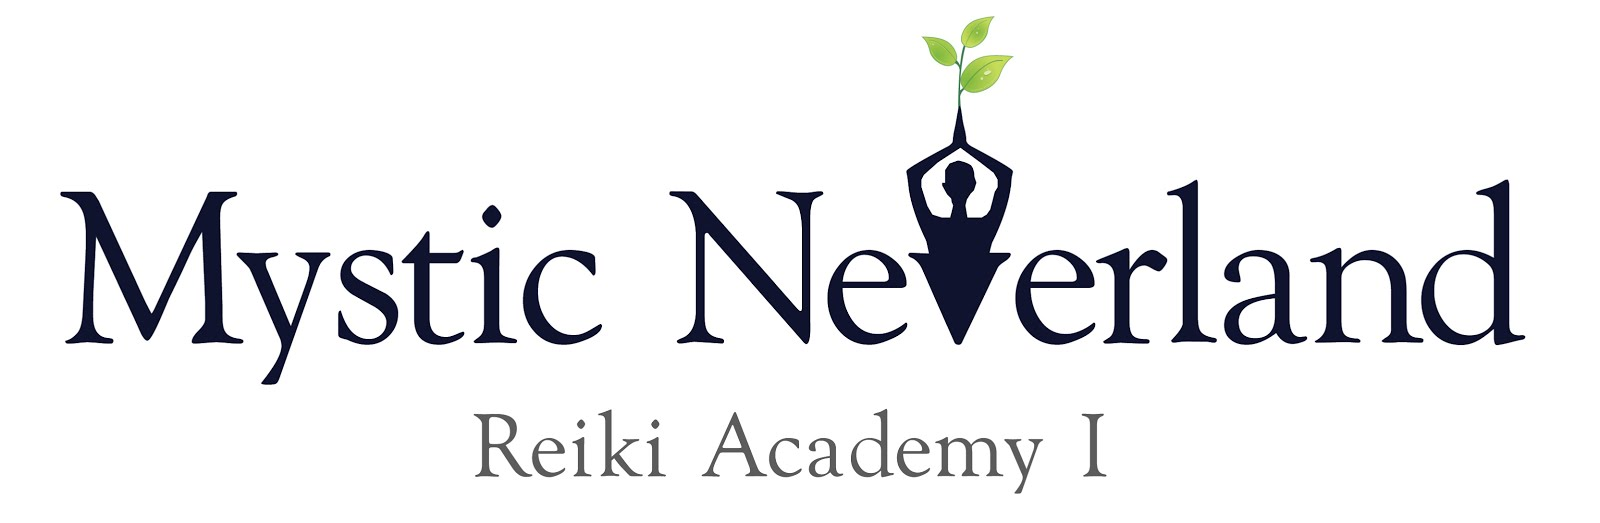 Mystic Neverland Reiki Academy Meditatin & Health Center